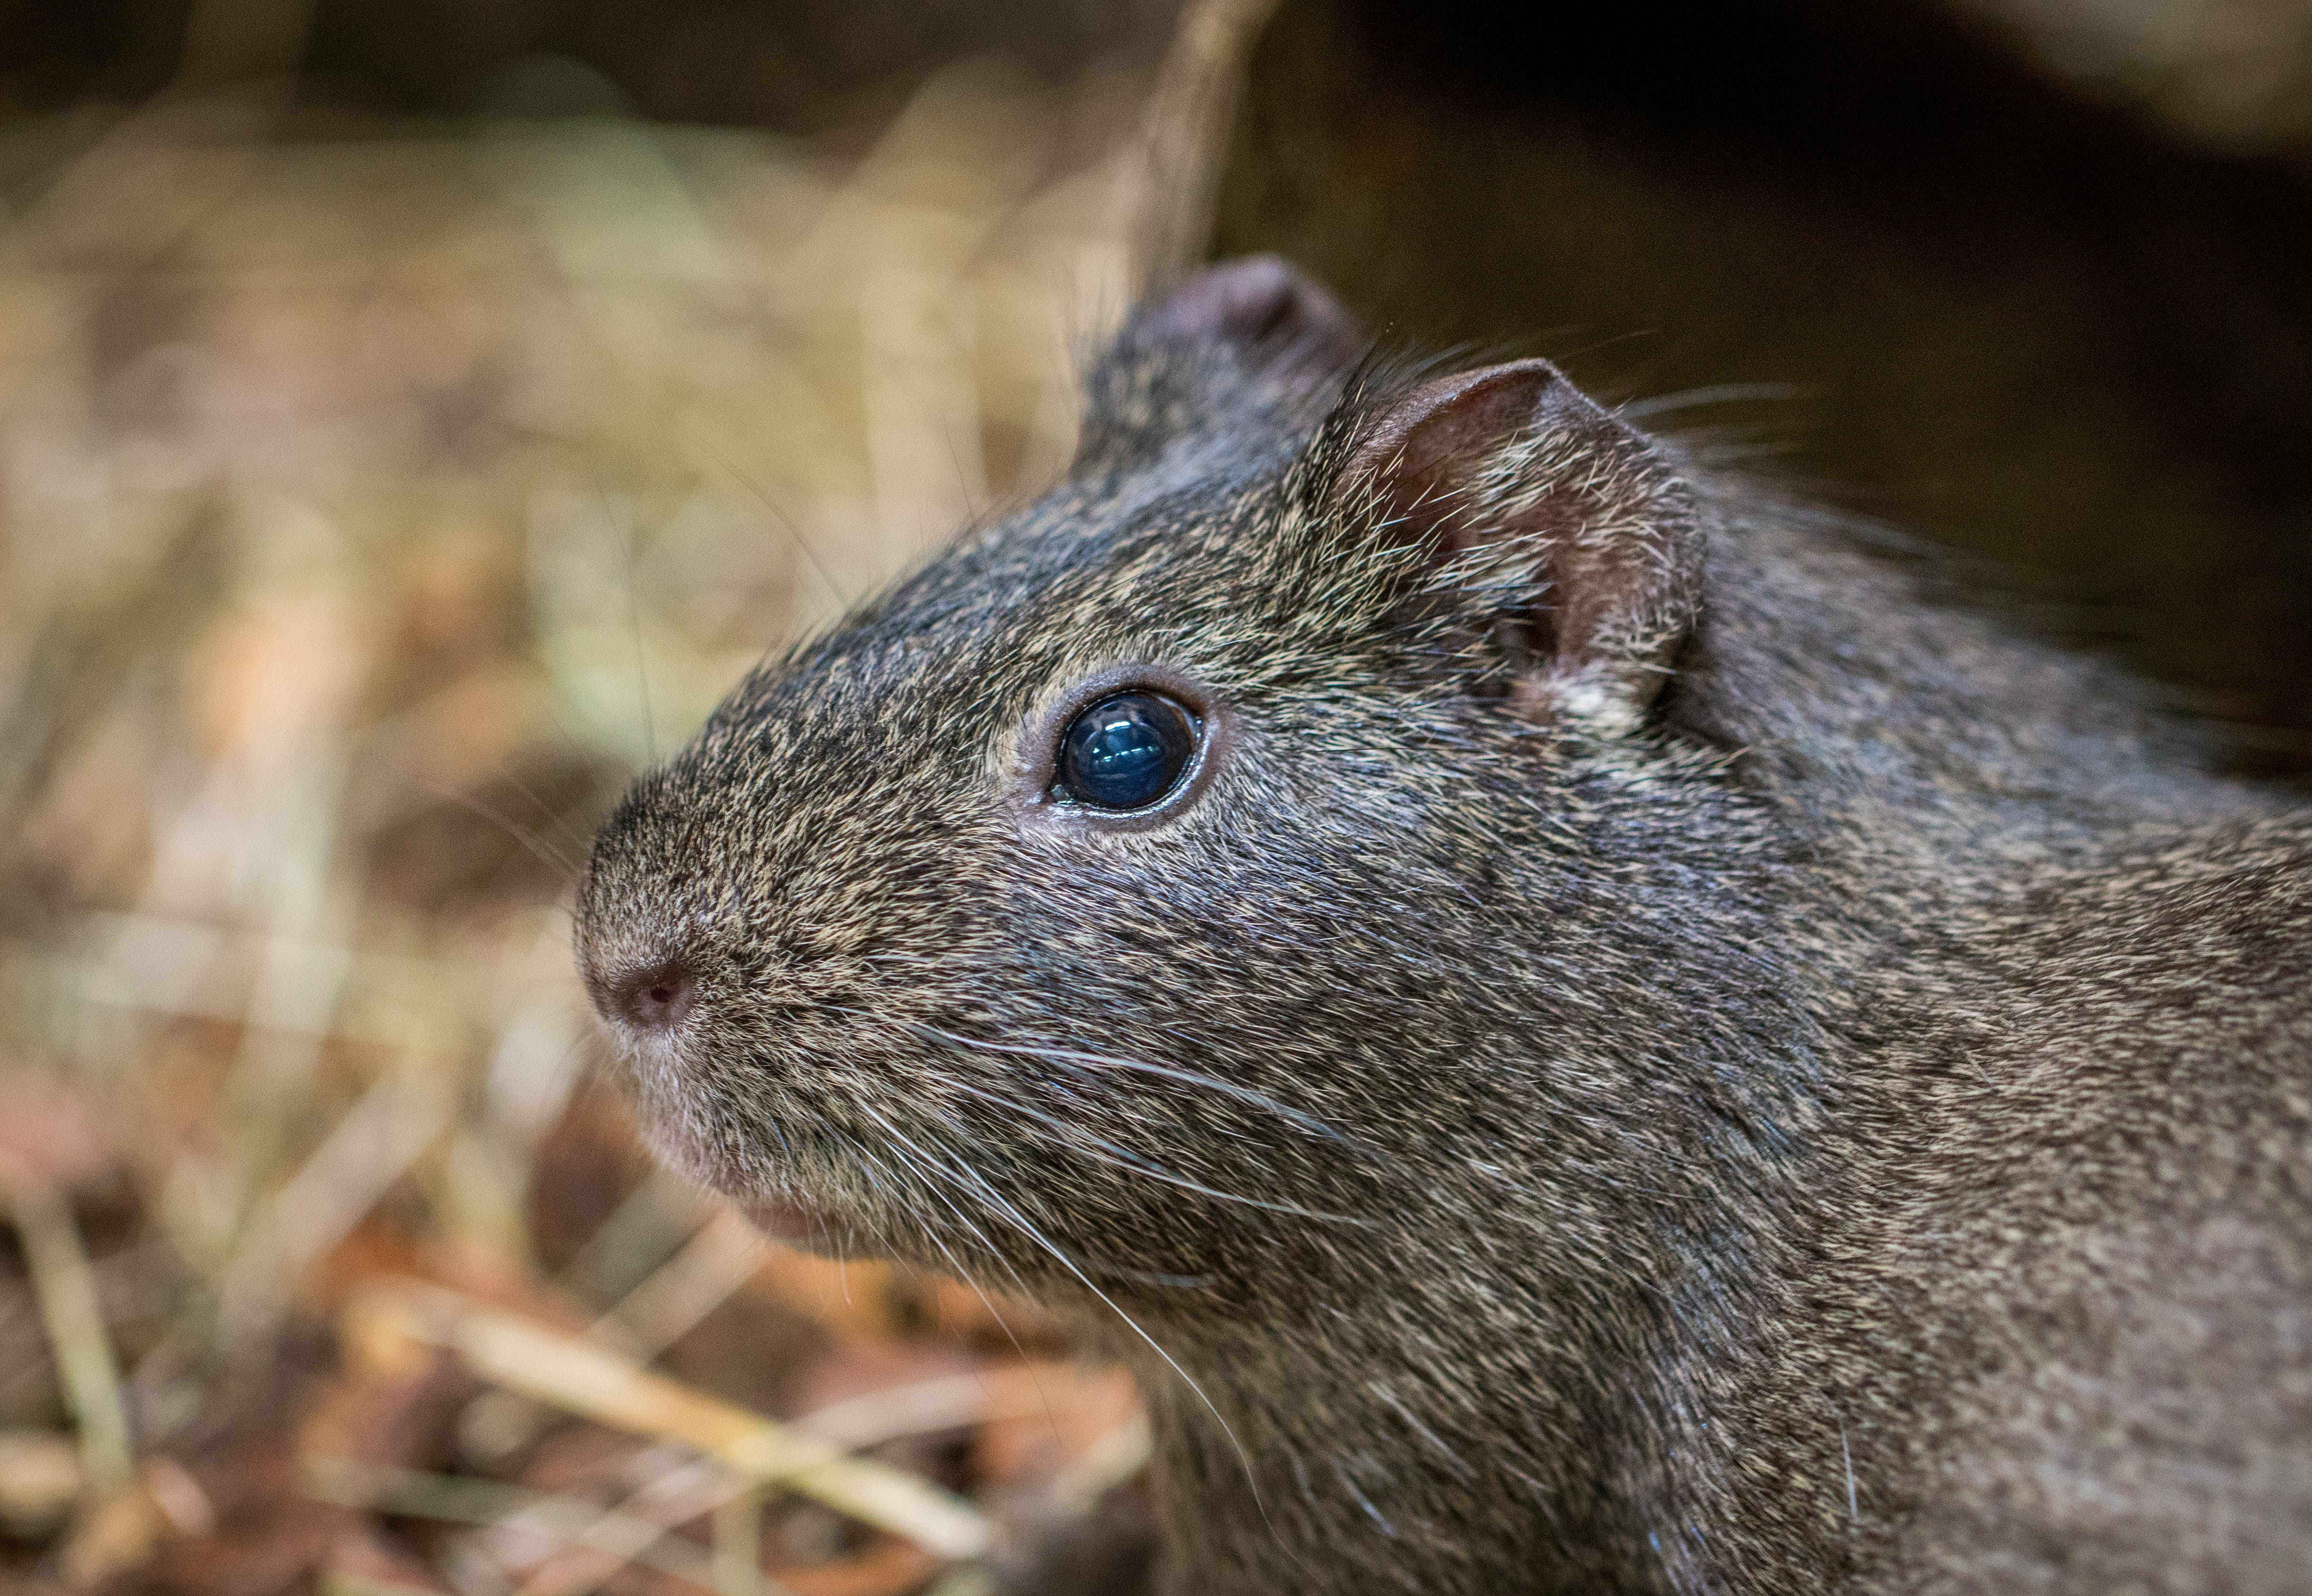 Close-up Photography of Gray Rodent at Daytime